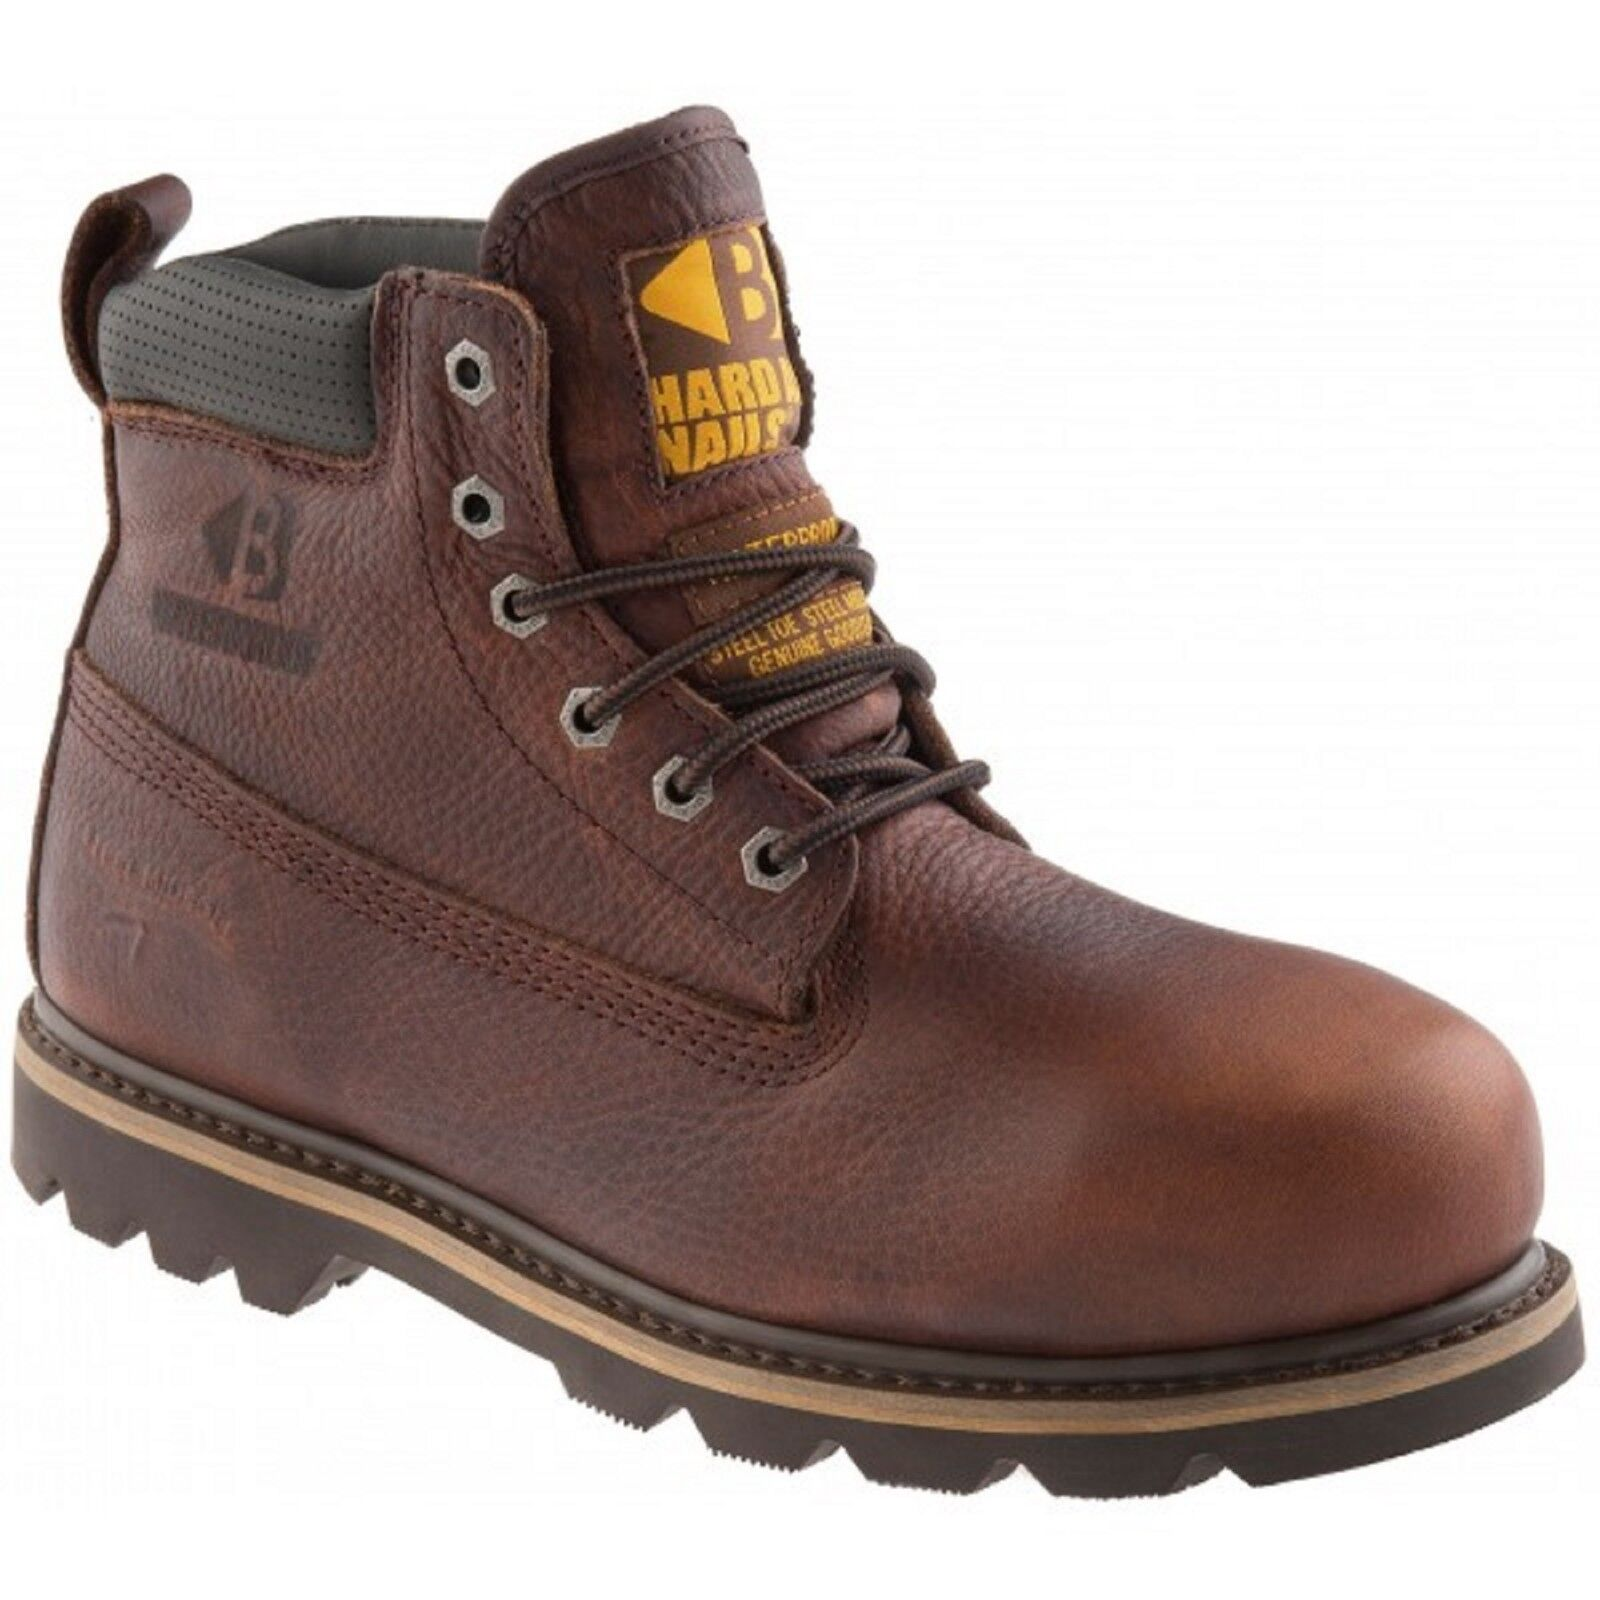 Buckler B750SMWP botas Marrón Weathergrain Leather SBP/SRC safety botas B750SMWP & K3 Sole 84dd86